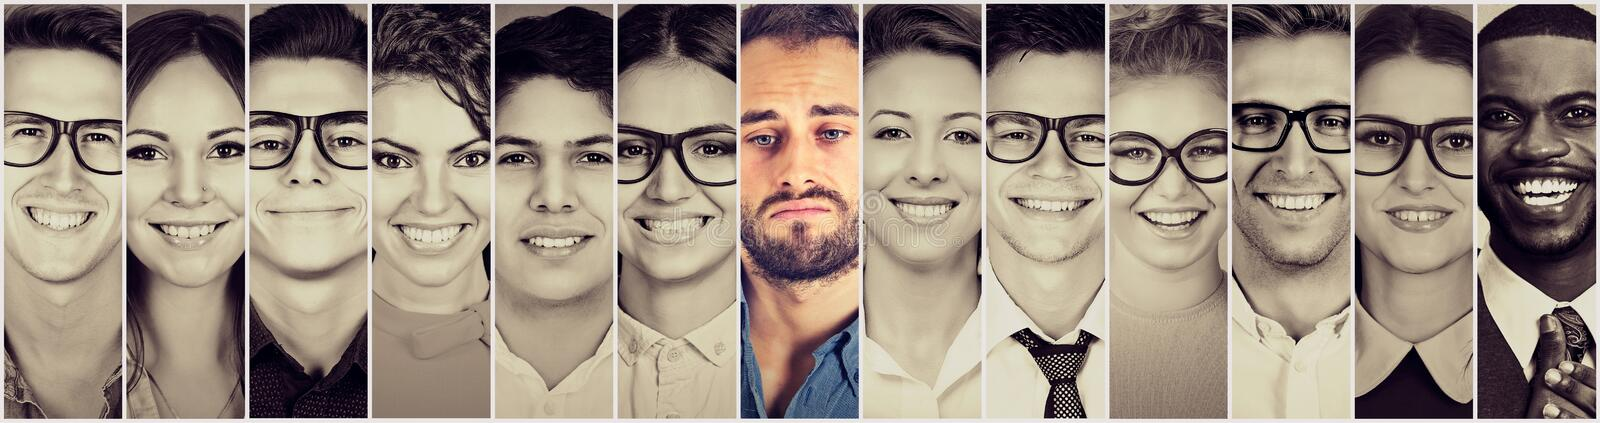 Smiling faces. Happy group of multiethnic people men and women. And a sad man royalty free stock images